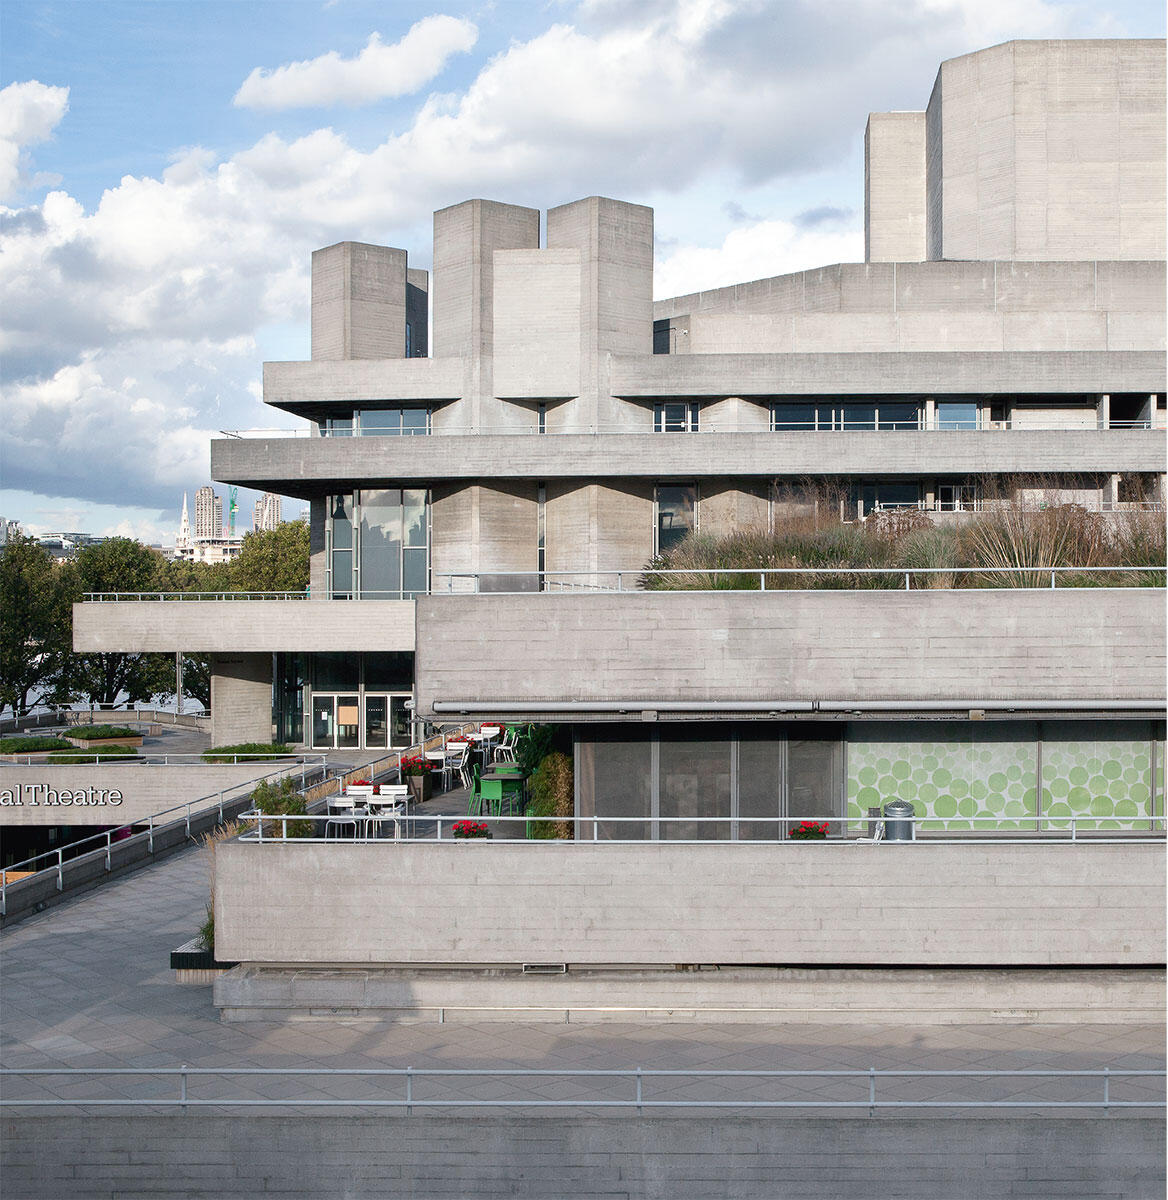 Ausladende Terrassen und markante Treppenund